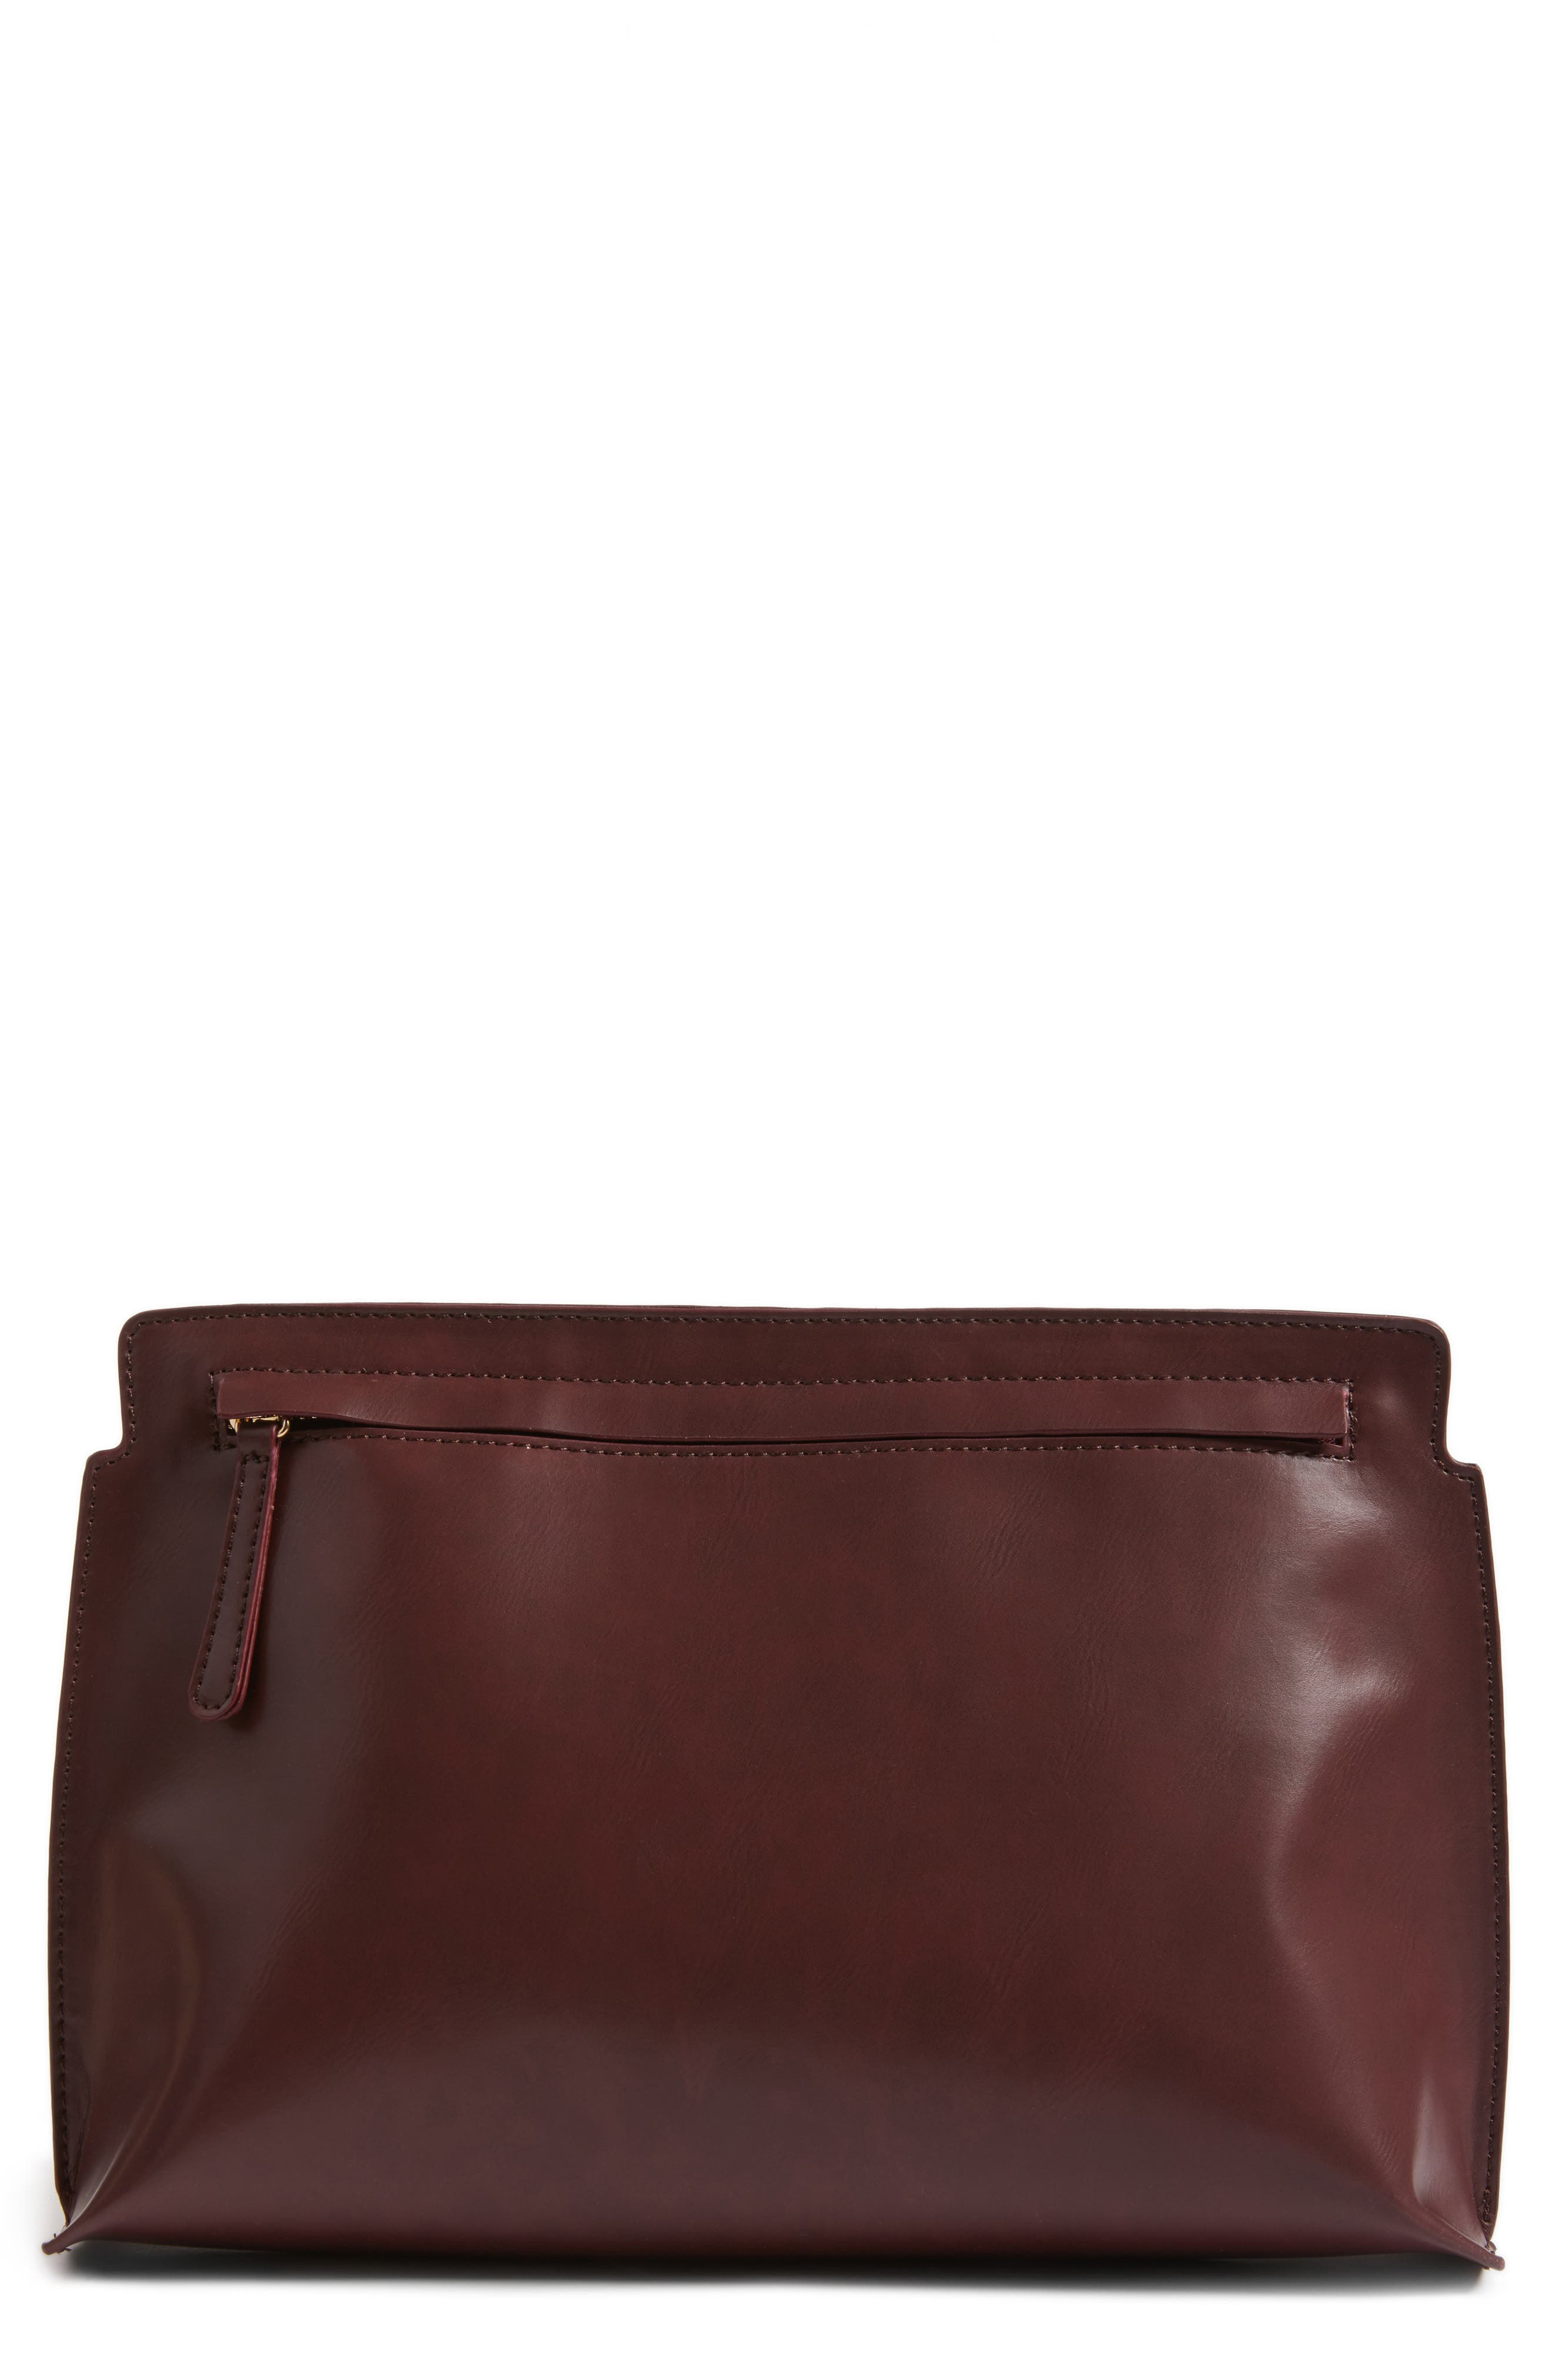 Main Image - BP. Faux Leather Clutch